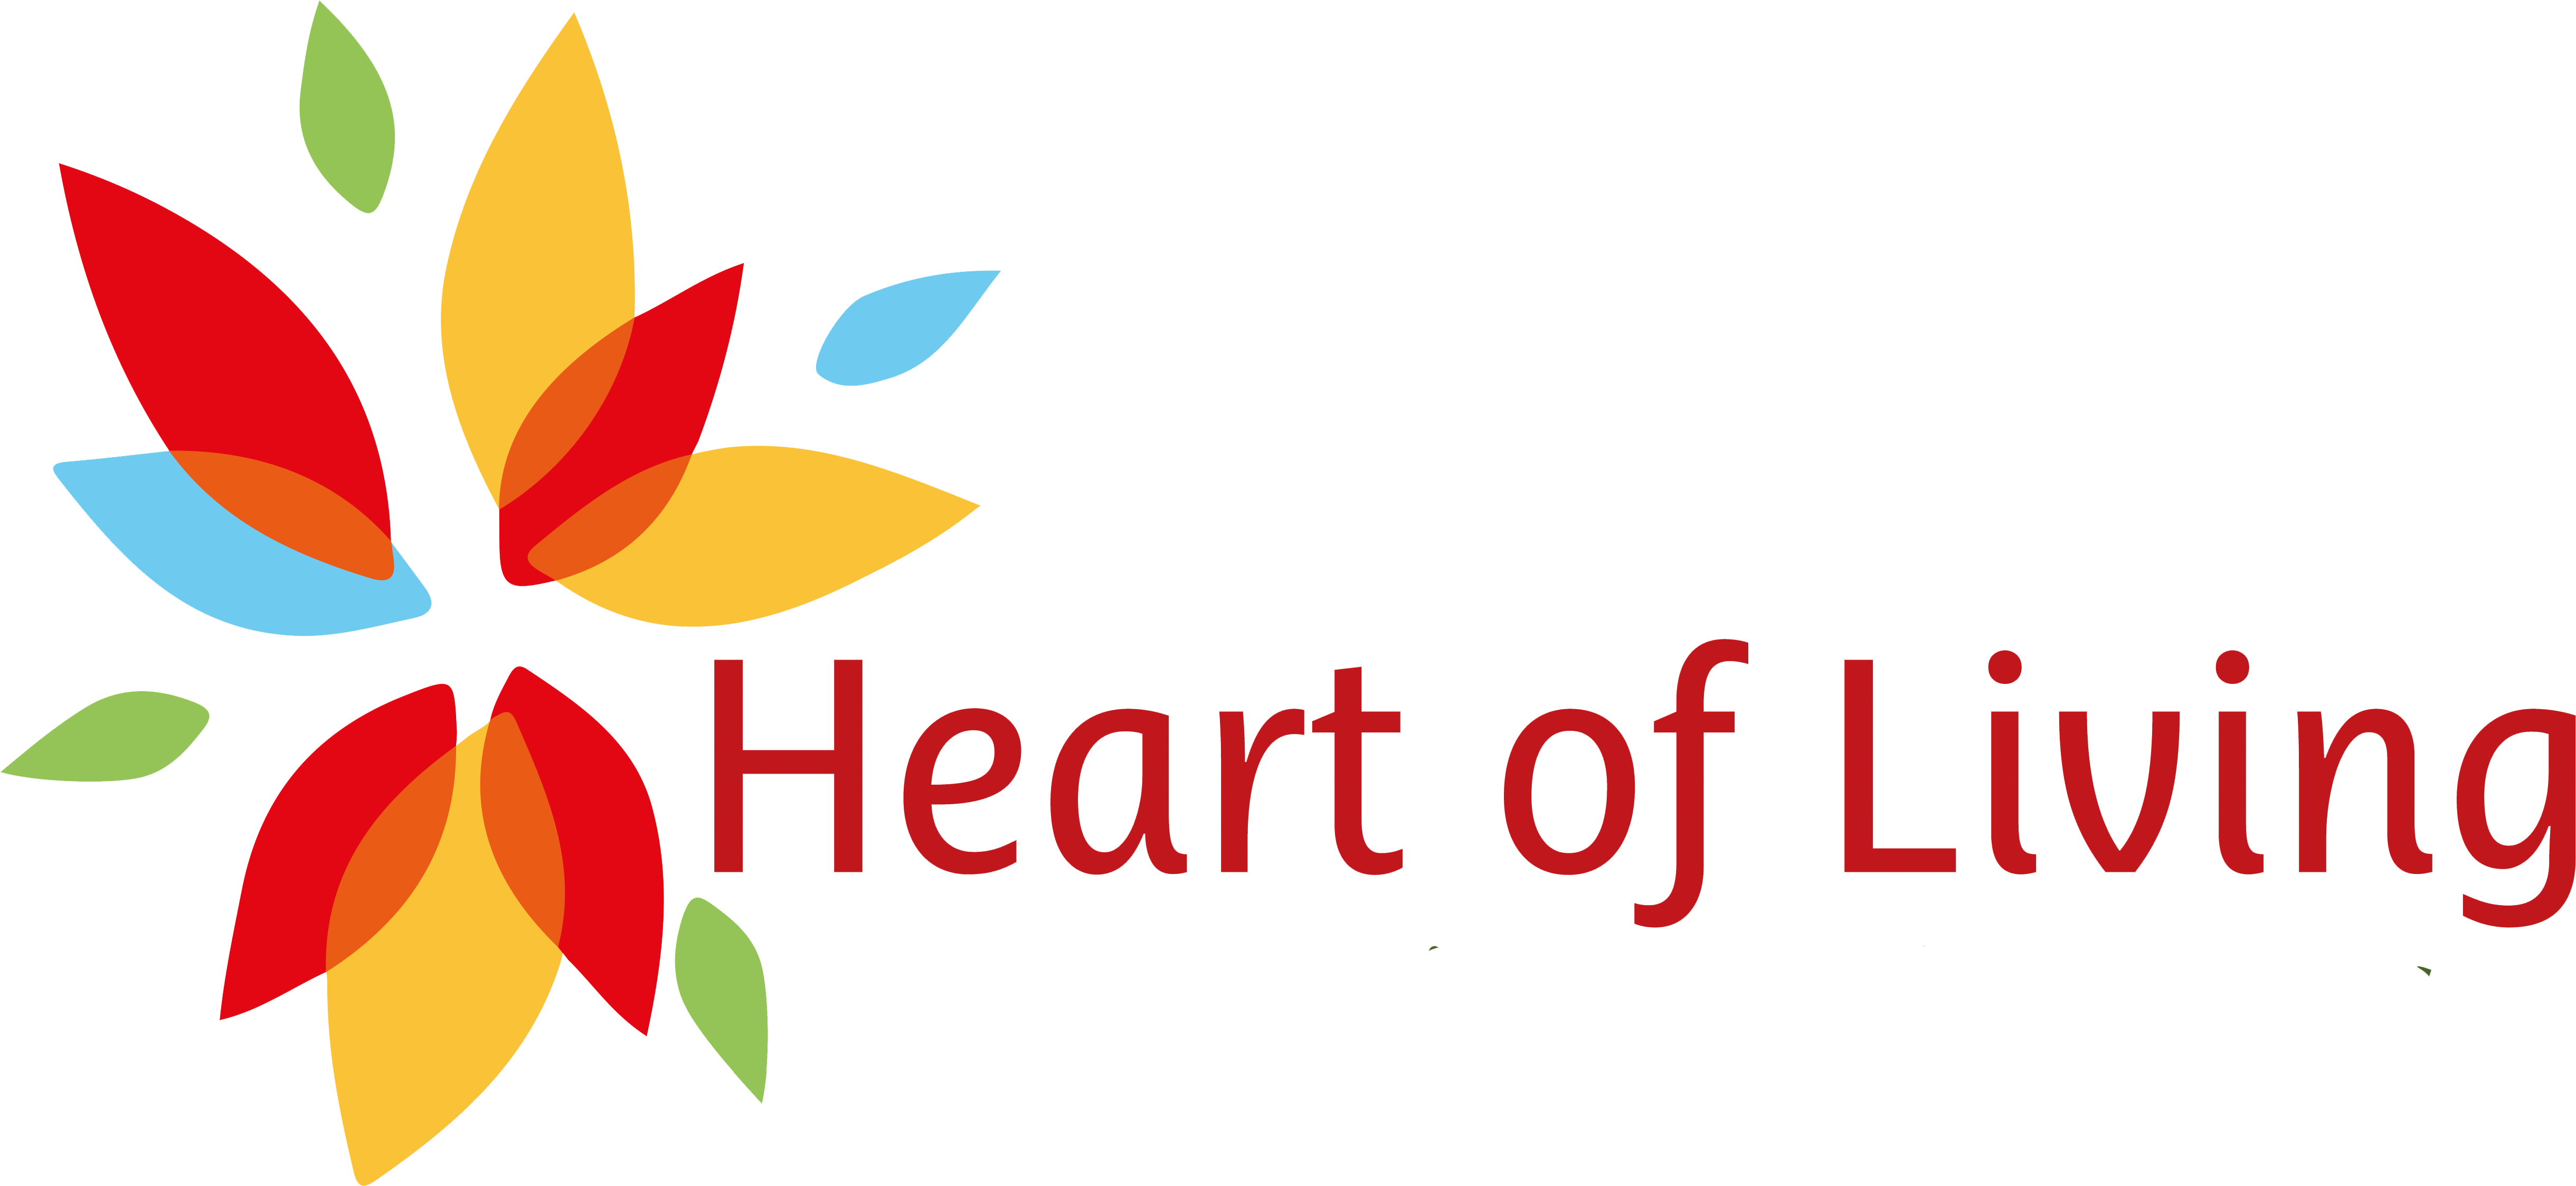 Heart of Living